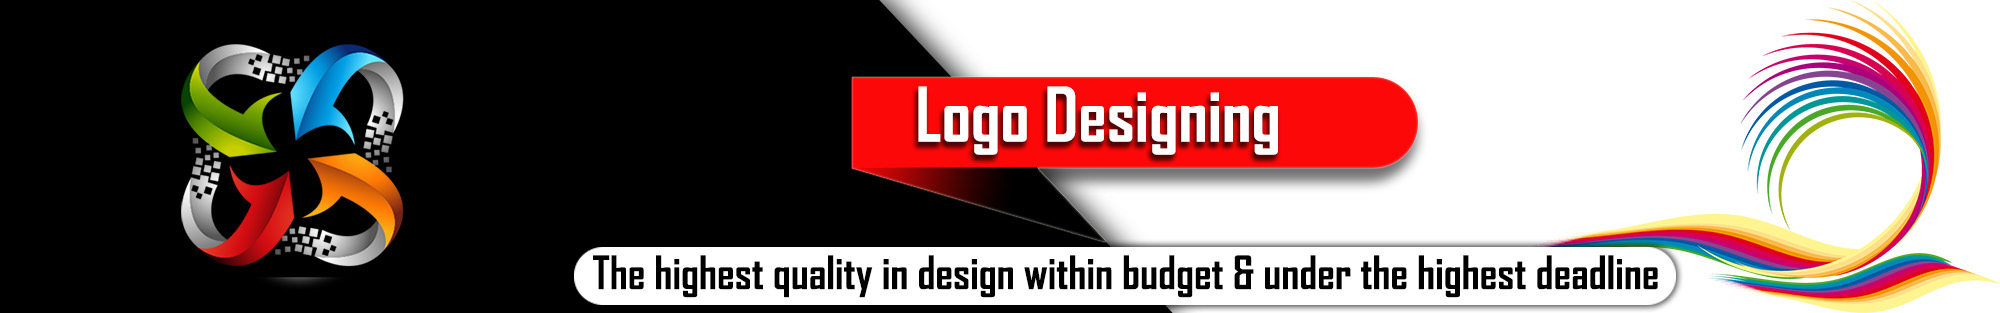 Creative logo design company in Mumbai, Navi Mumbai, India